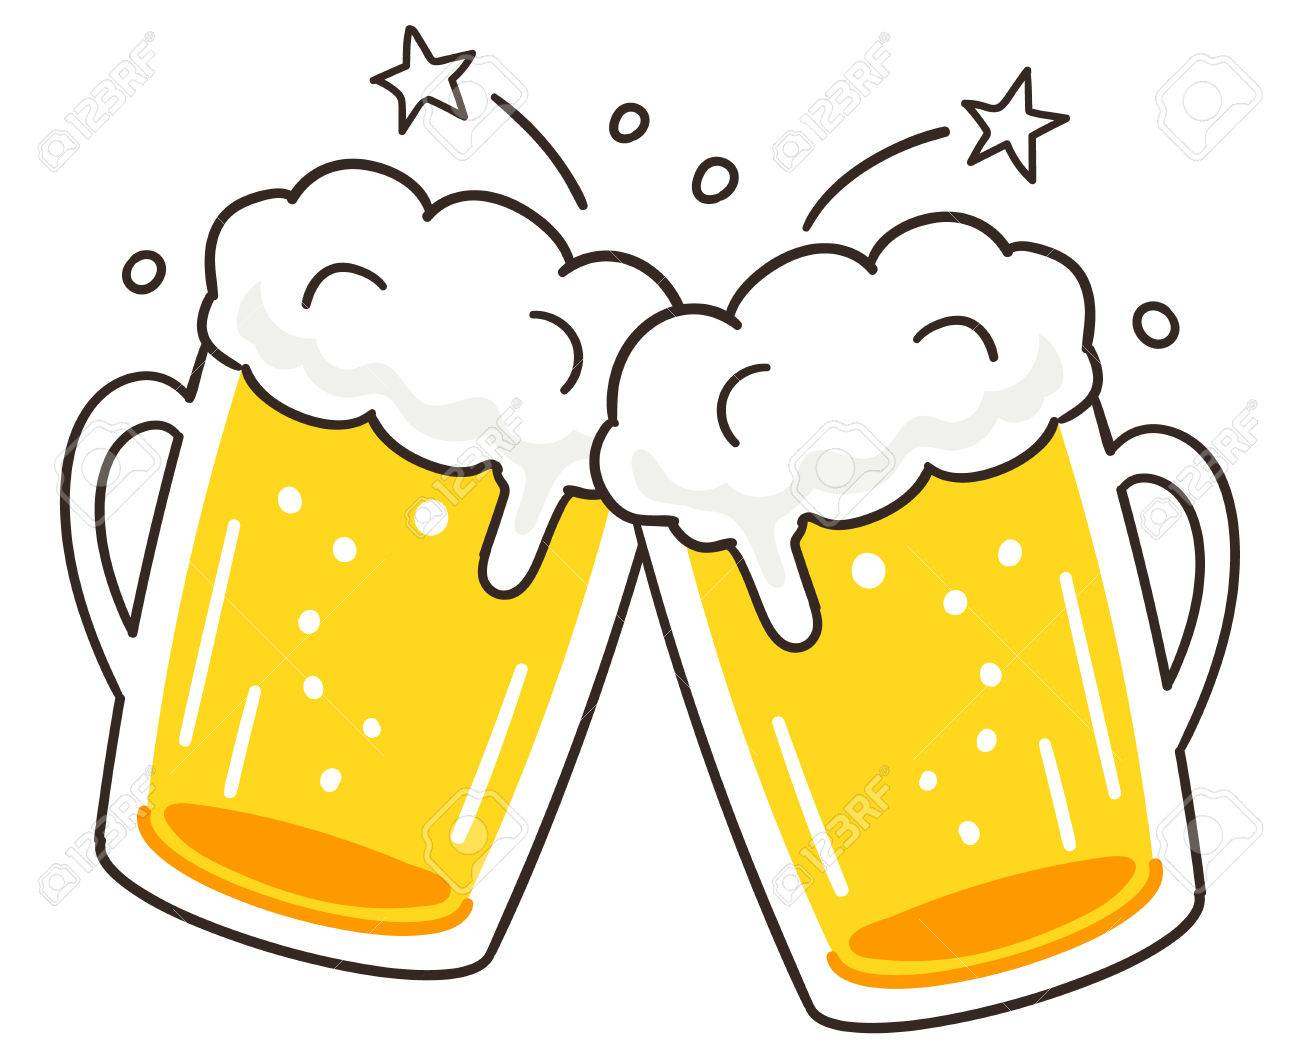 beer stein silhouette at getdrawings com free for personal use rh getdrawings com beer clip art free images beer clip art free images